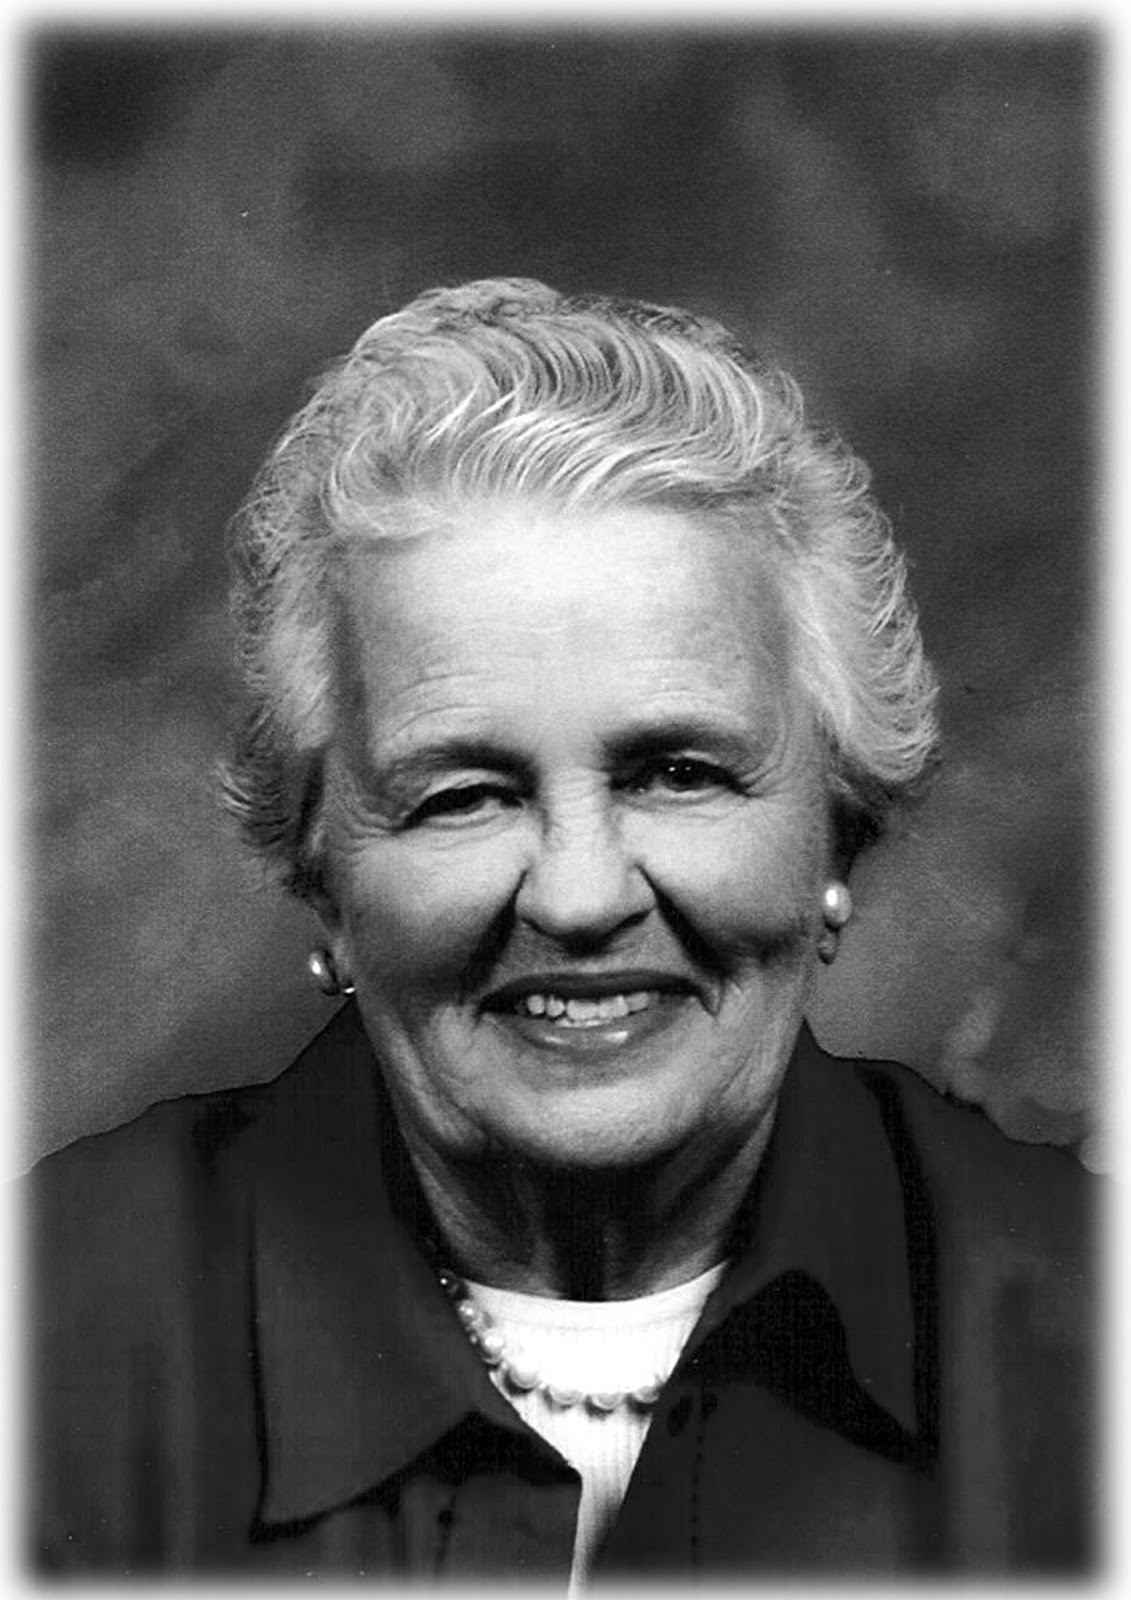 Today we honor a long-time member, benefactor, past chair of the OGS Cemetery Committee, and a past Trustee of the Ohio Genealogical Society - Lolita Thayer ... - LolitaGuthrie-2